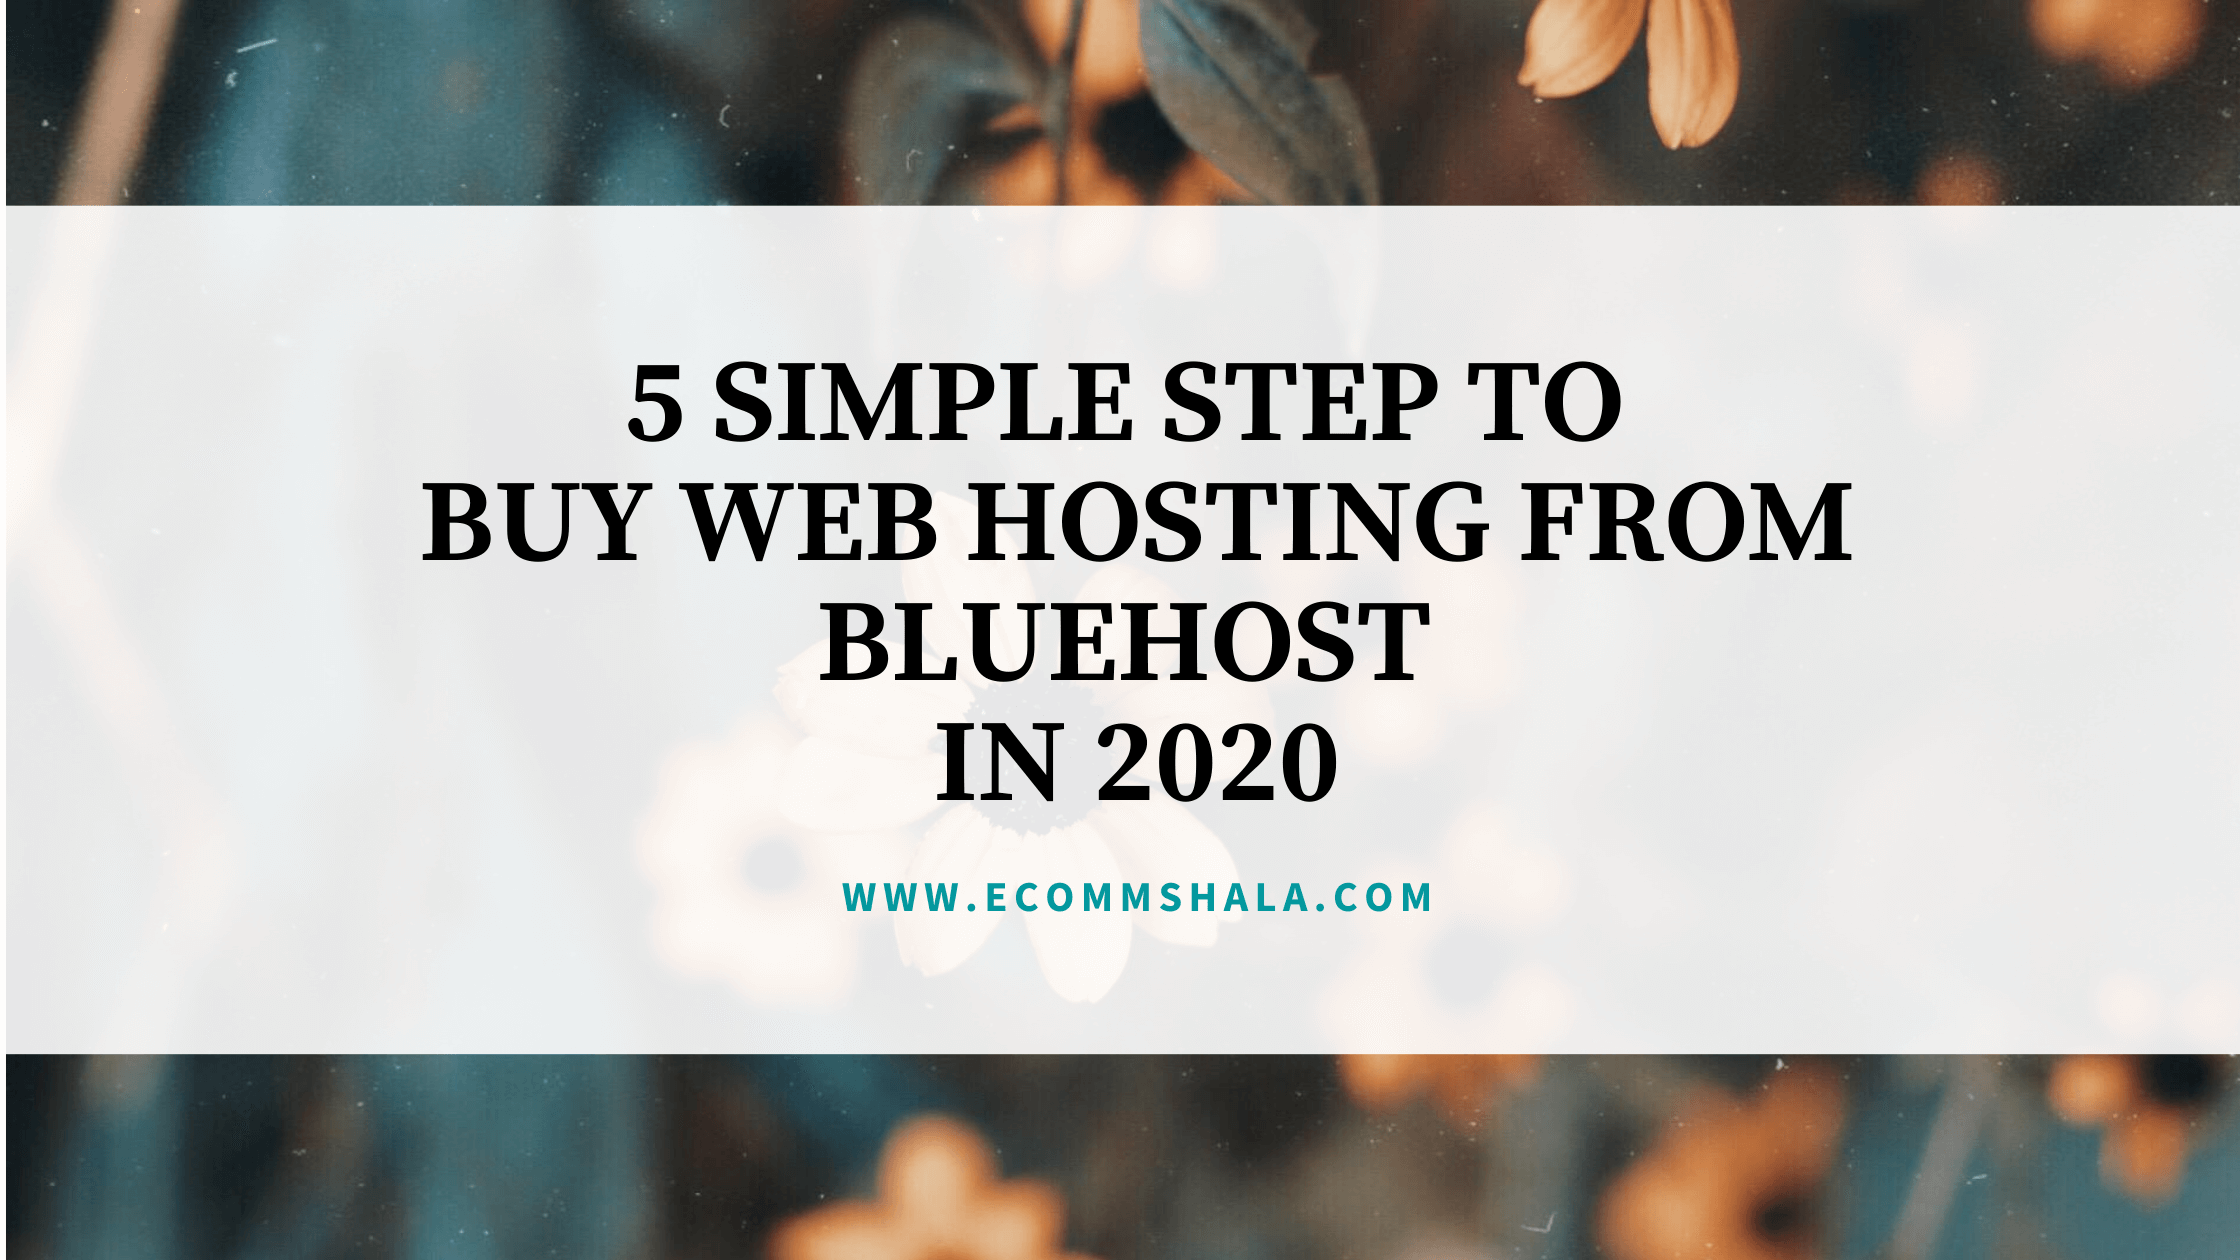 How to Buy Web hosting from Bluehost? 5 Simple Step to Buy web Hosting from Bluehost in 2020